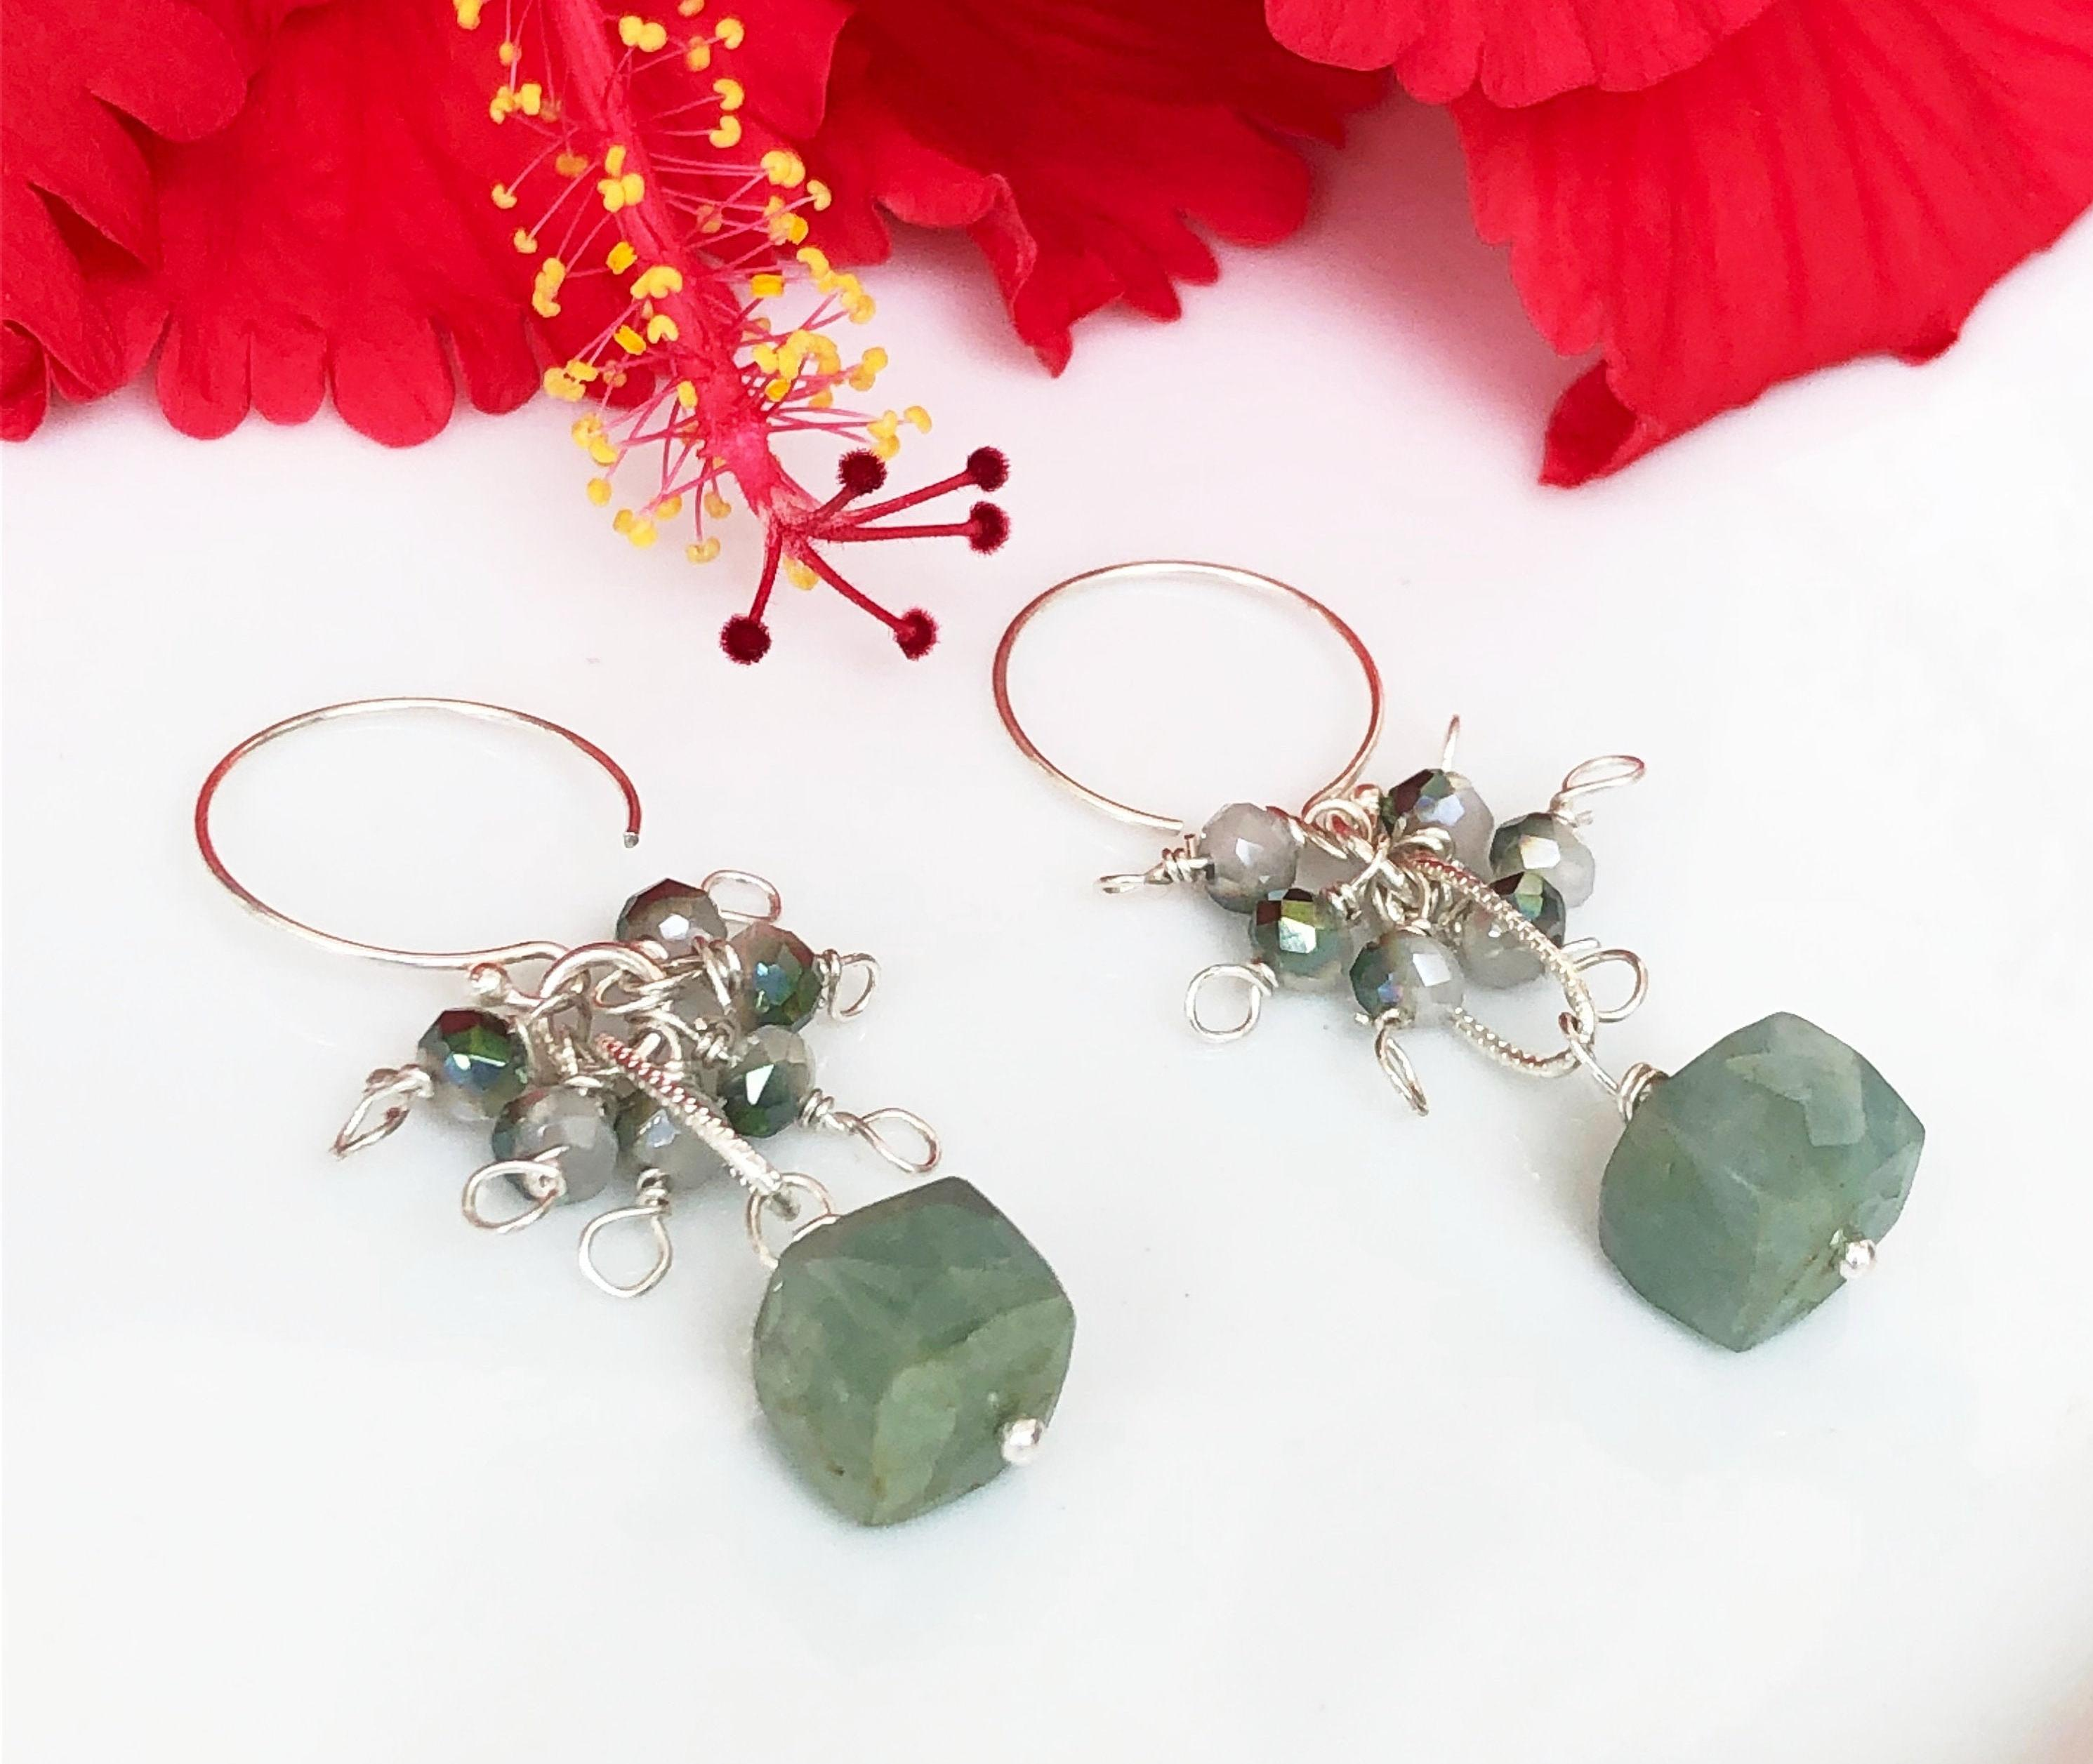 92.5 Sterling Silver Drop Earrings With Aquamarine Box Faceted Stone & Shaded Crystal Cluster.